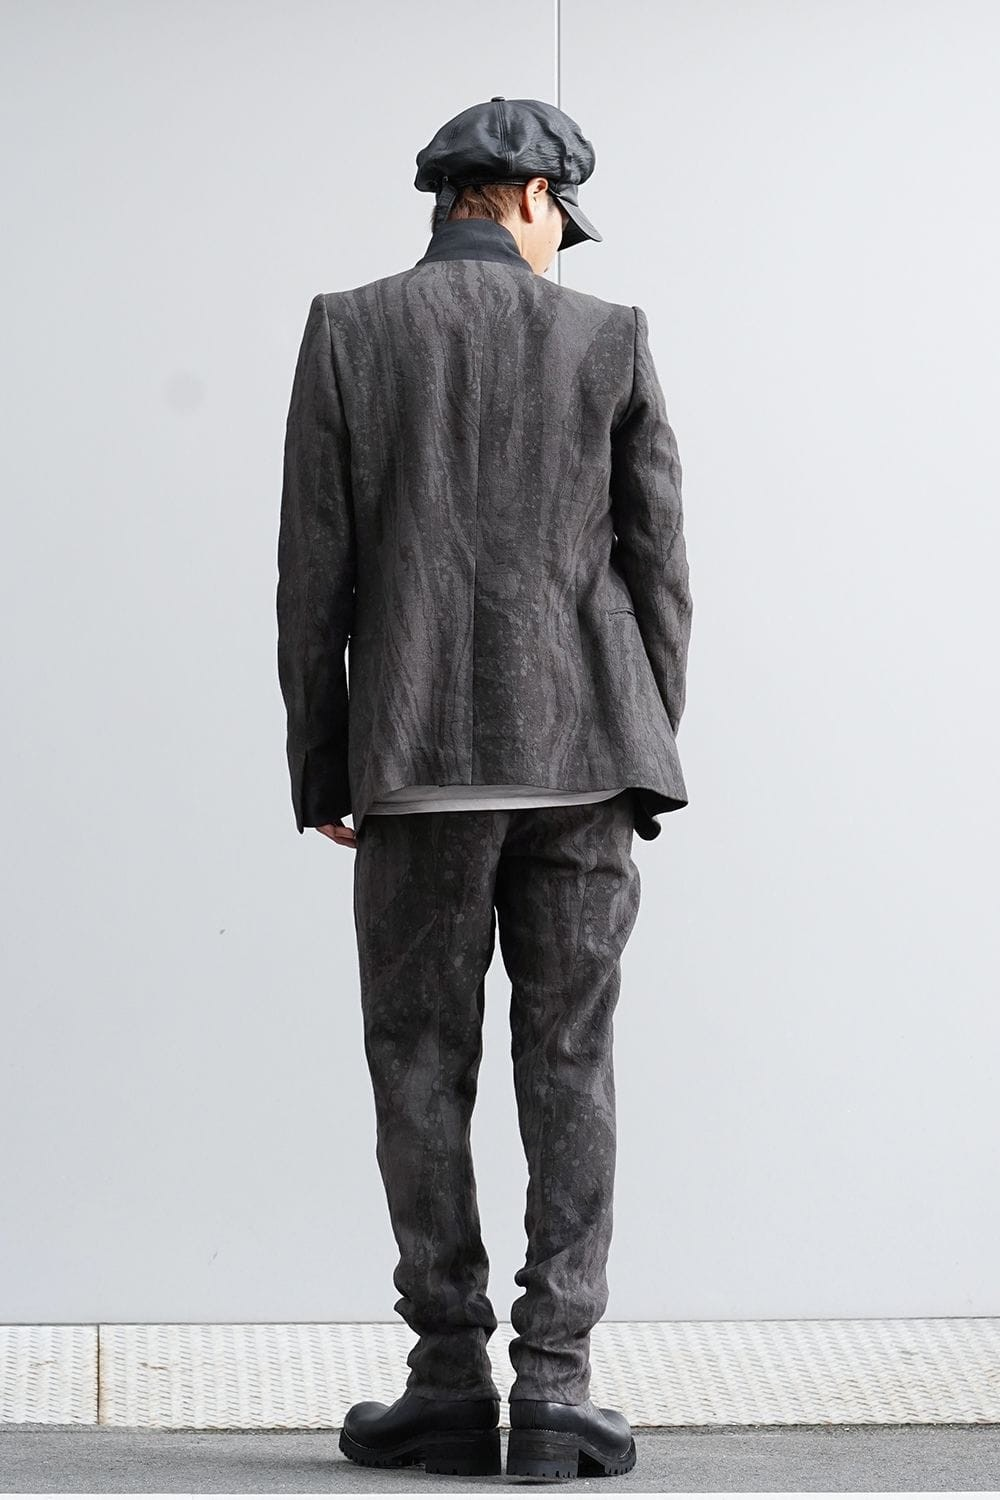 Suminagashi-dyed Linen High-Neck Tailor JKT